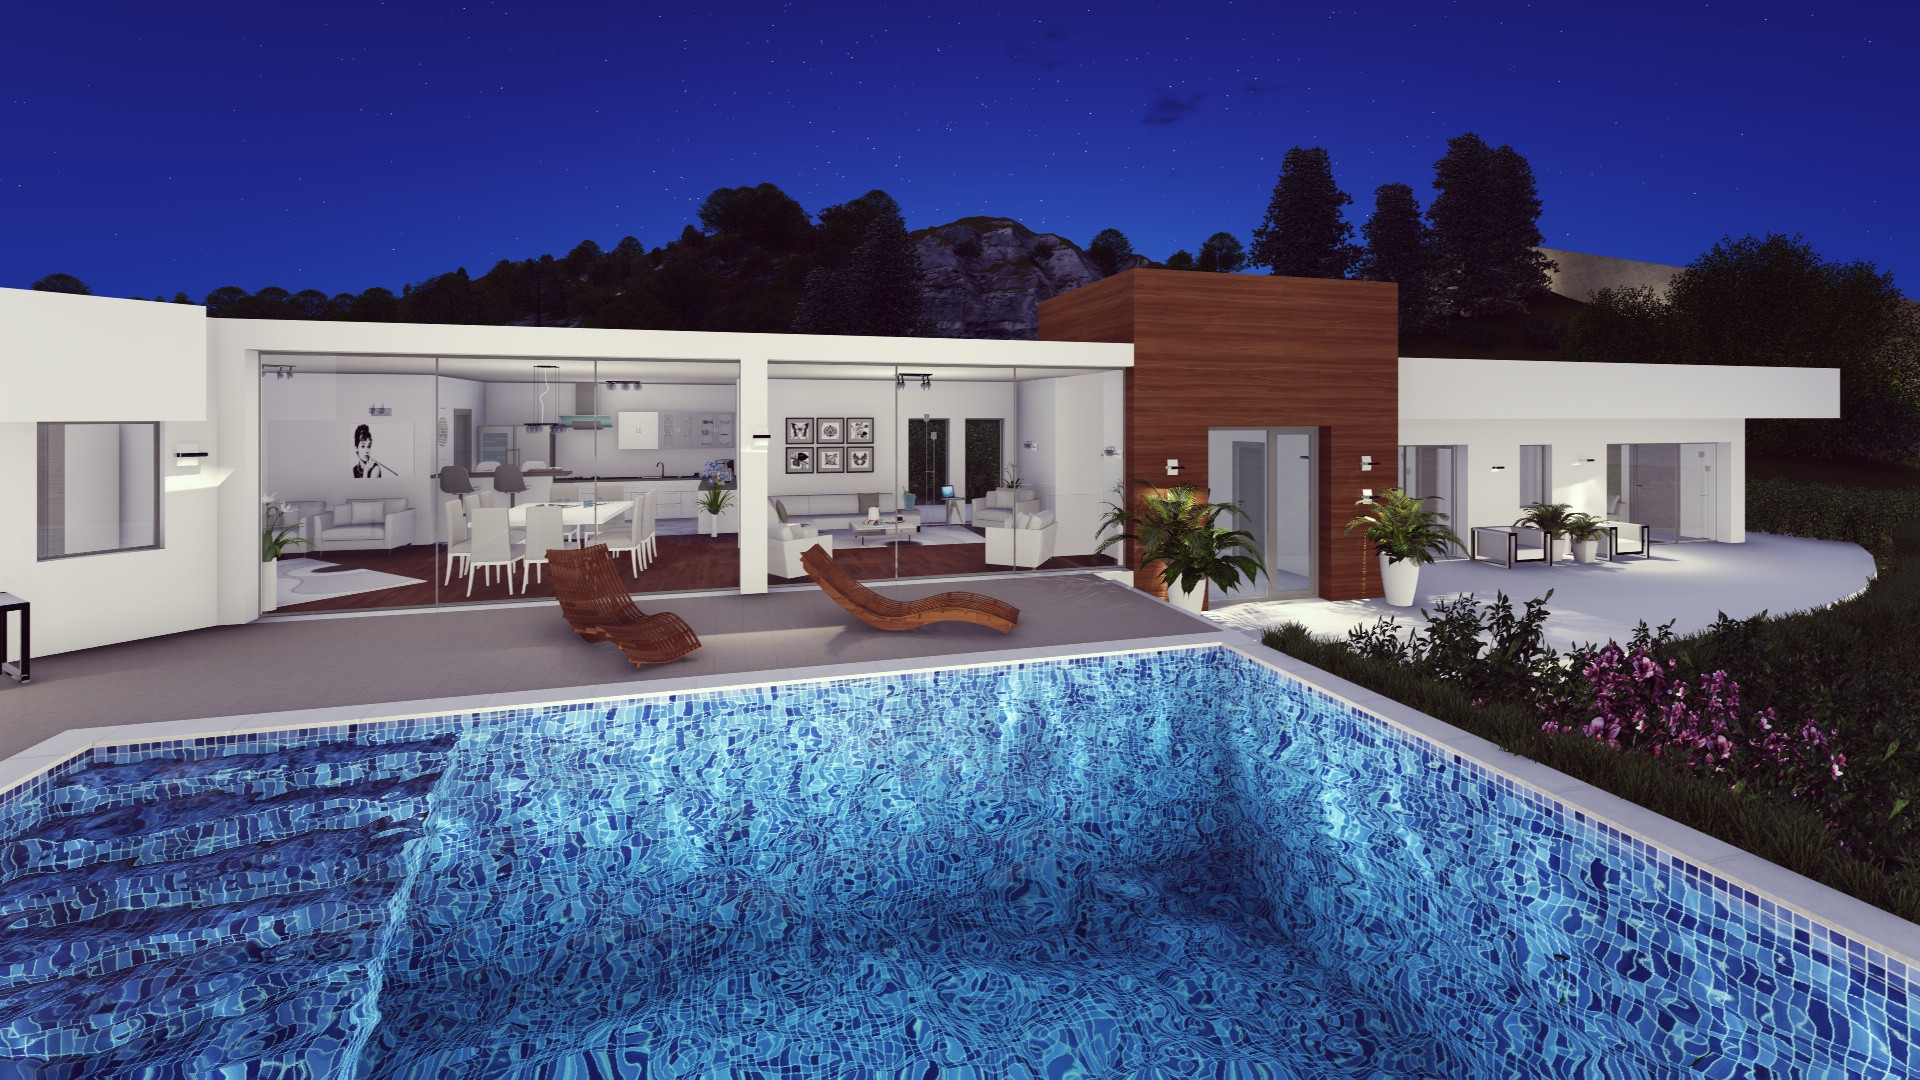 how to decorate your home for a wedding moderne luxe villa op groot perceel costa sol spanje 13706